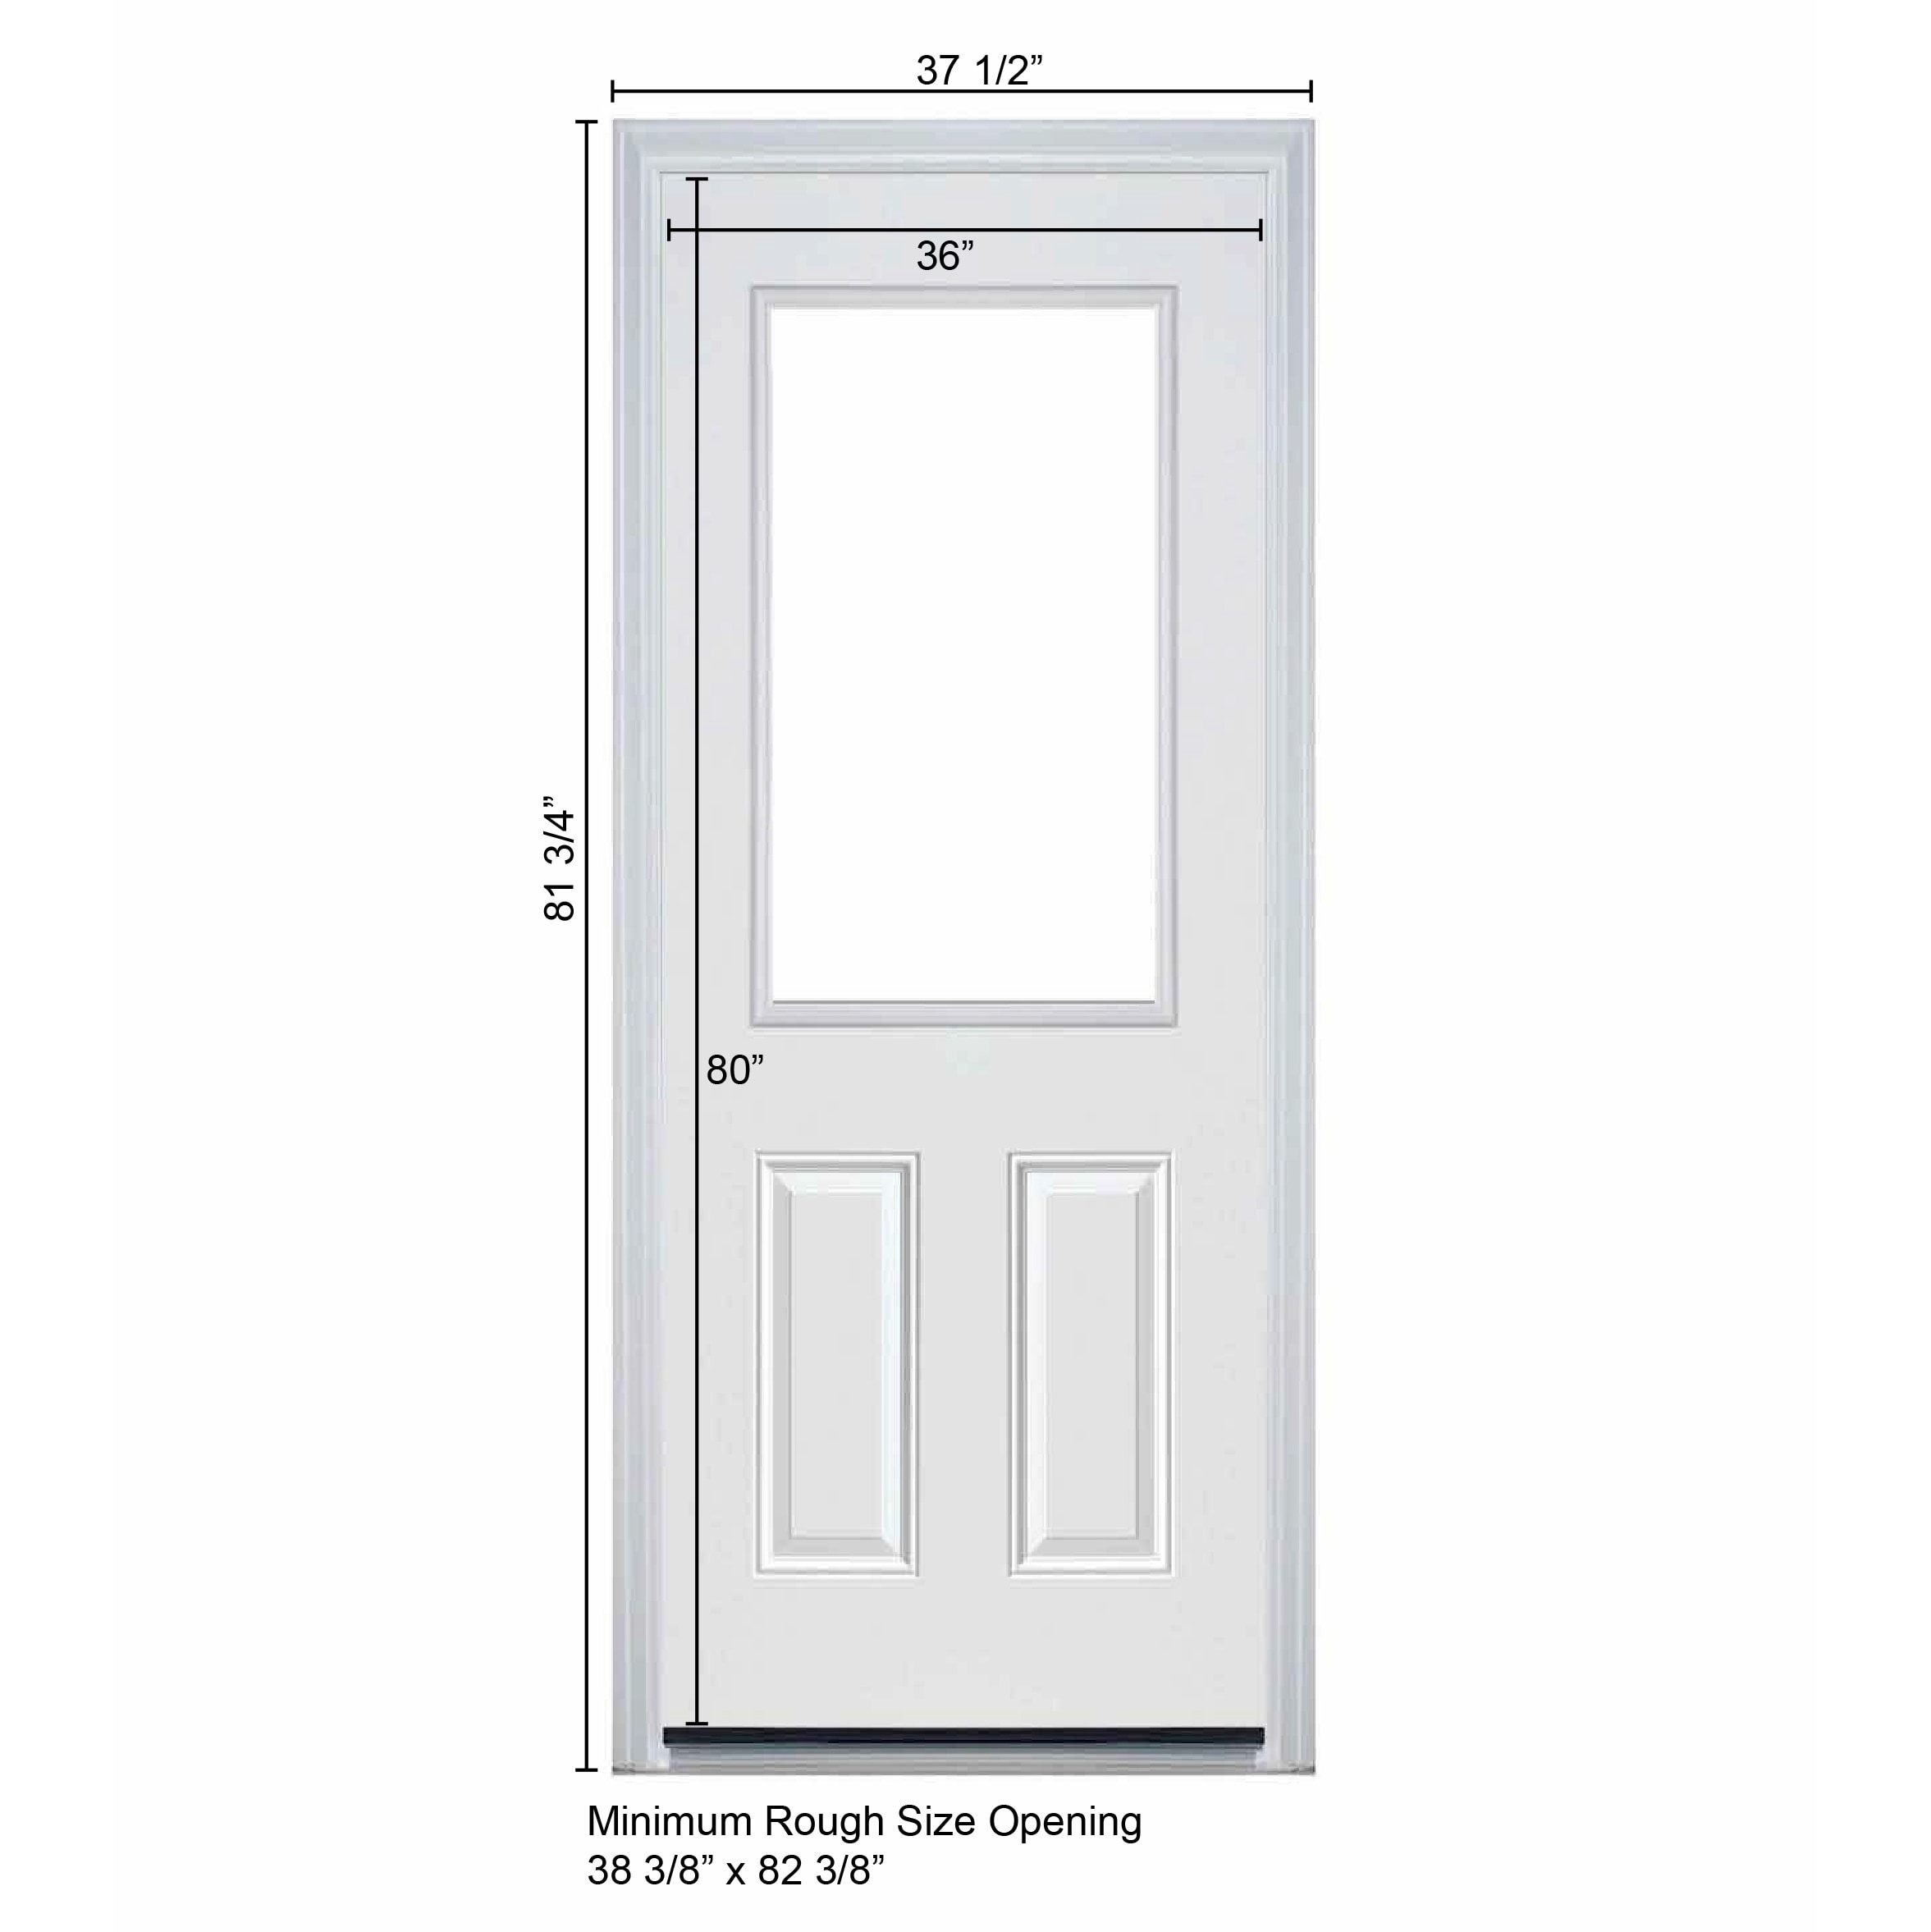 2354 #262832 New Concept Exterior Doors Pre Hung Steel Pandora Collection wallpaper Pre Hung Steel Doors 44752353